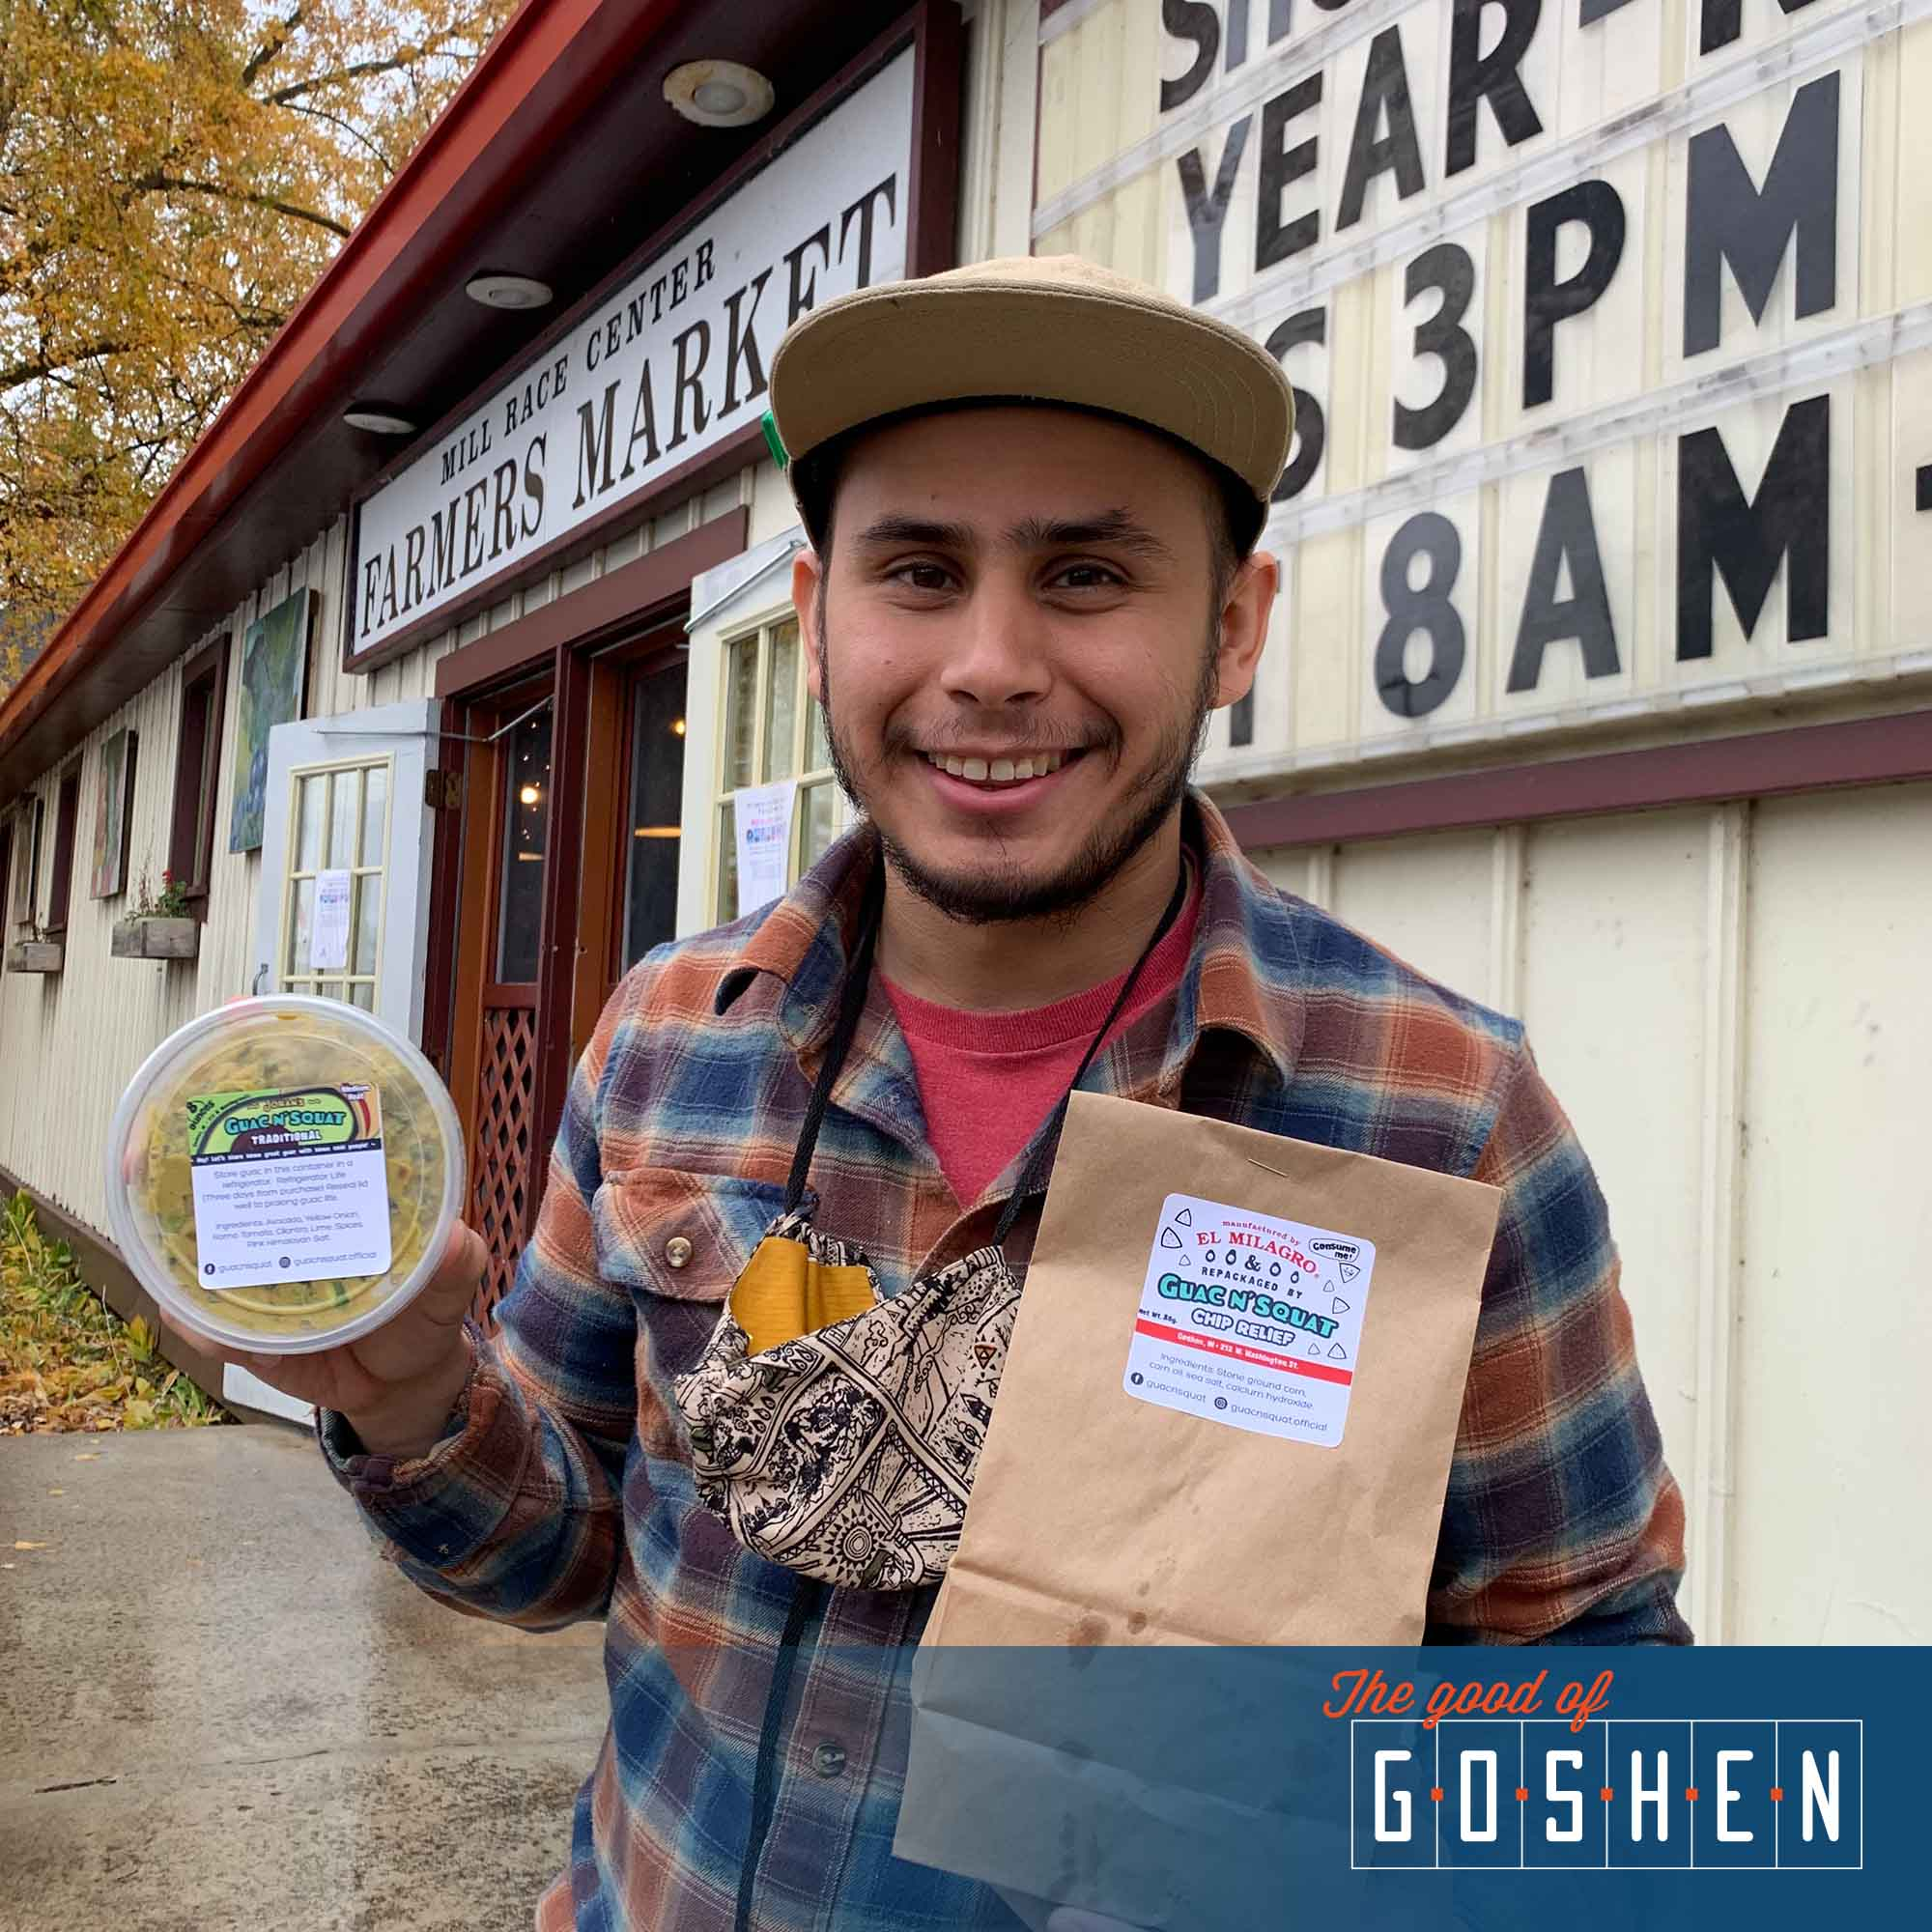 Johan Vazquez • The Good of Goshen